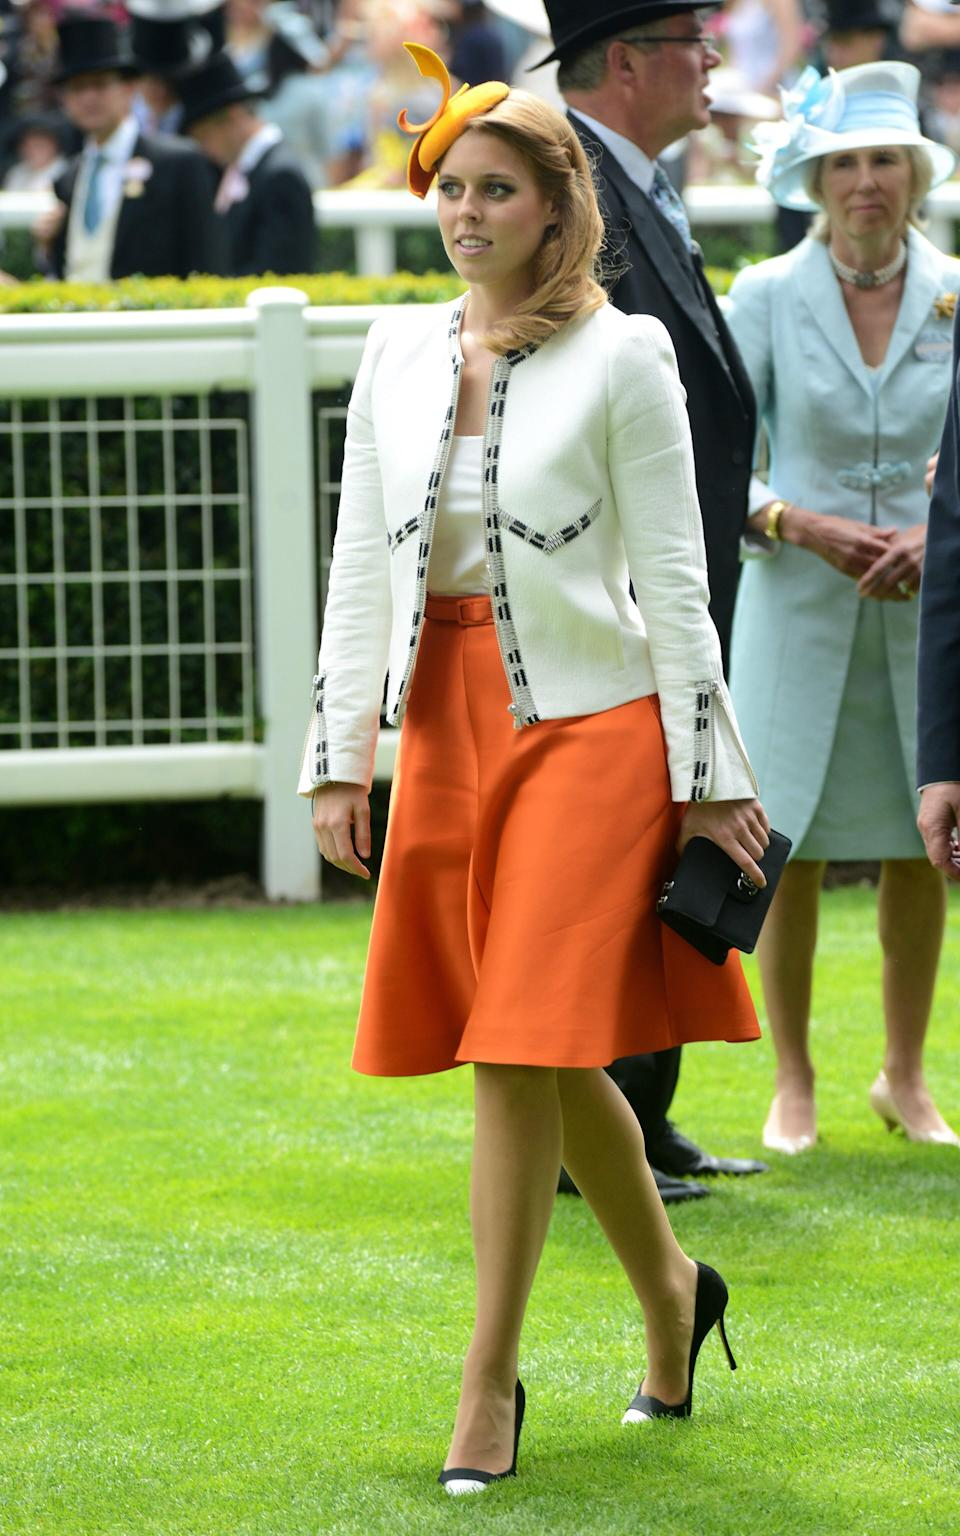 Princess Beatrice of York is seen about to present the Ribblesdale Stakes trophy during day three of Royal Ascot - Getty